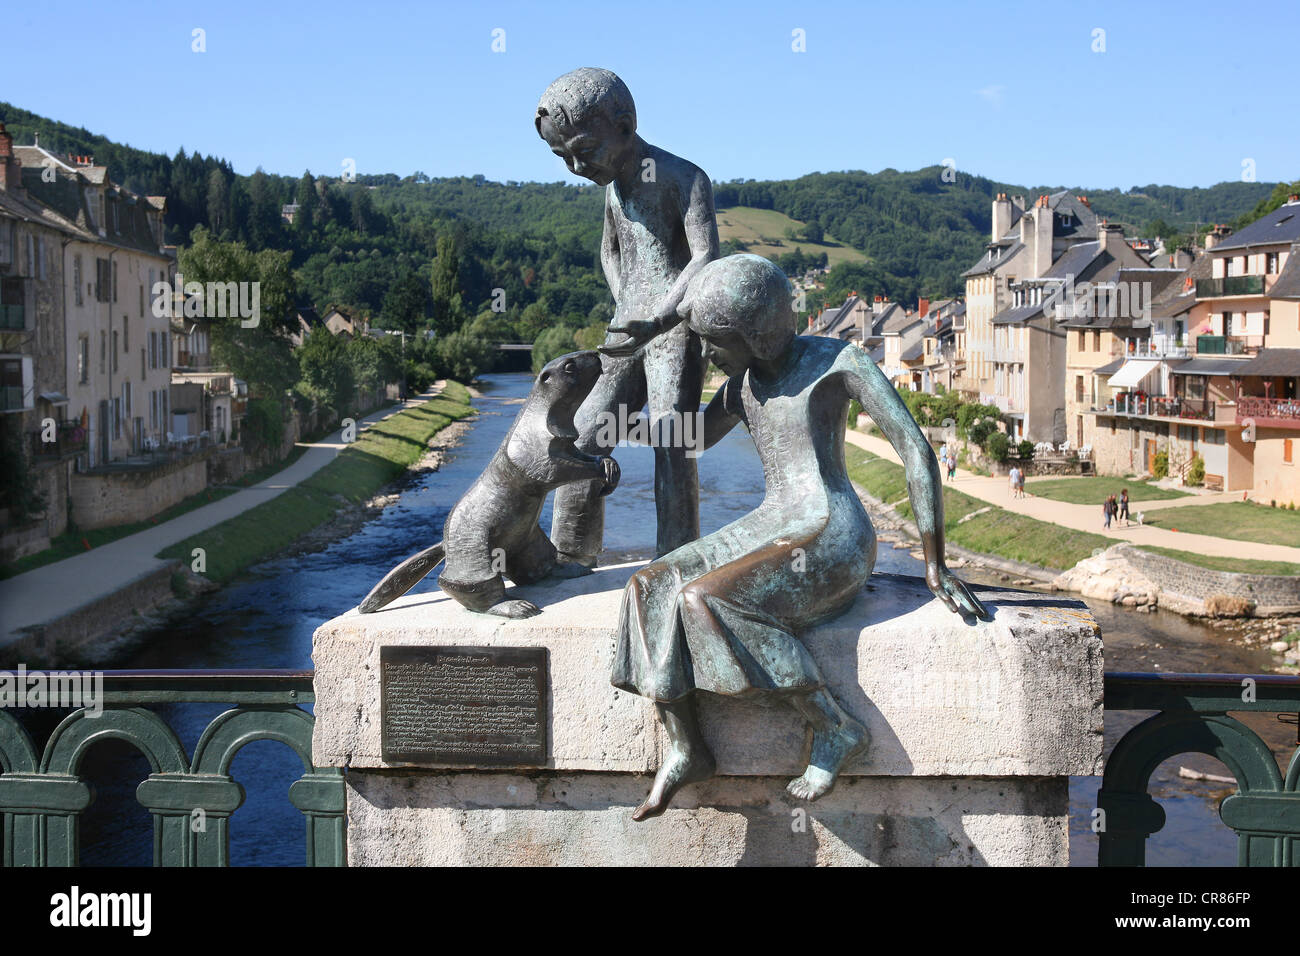 France, Aveyron, St Geniez d'Olt, the Marmots, by sculptor Eric Valat - Stock Image